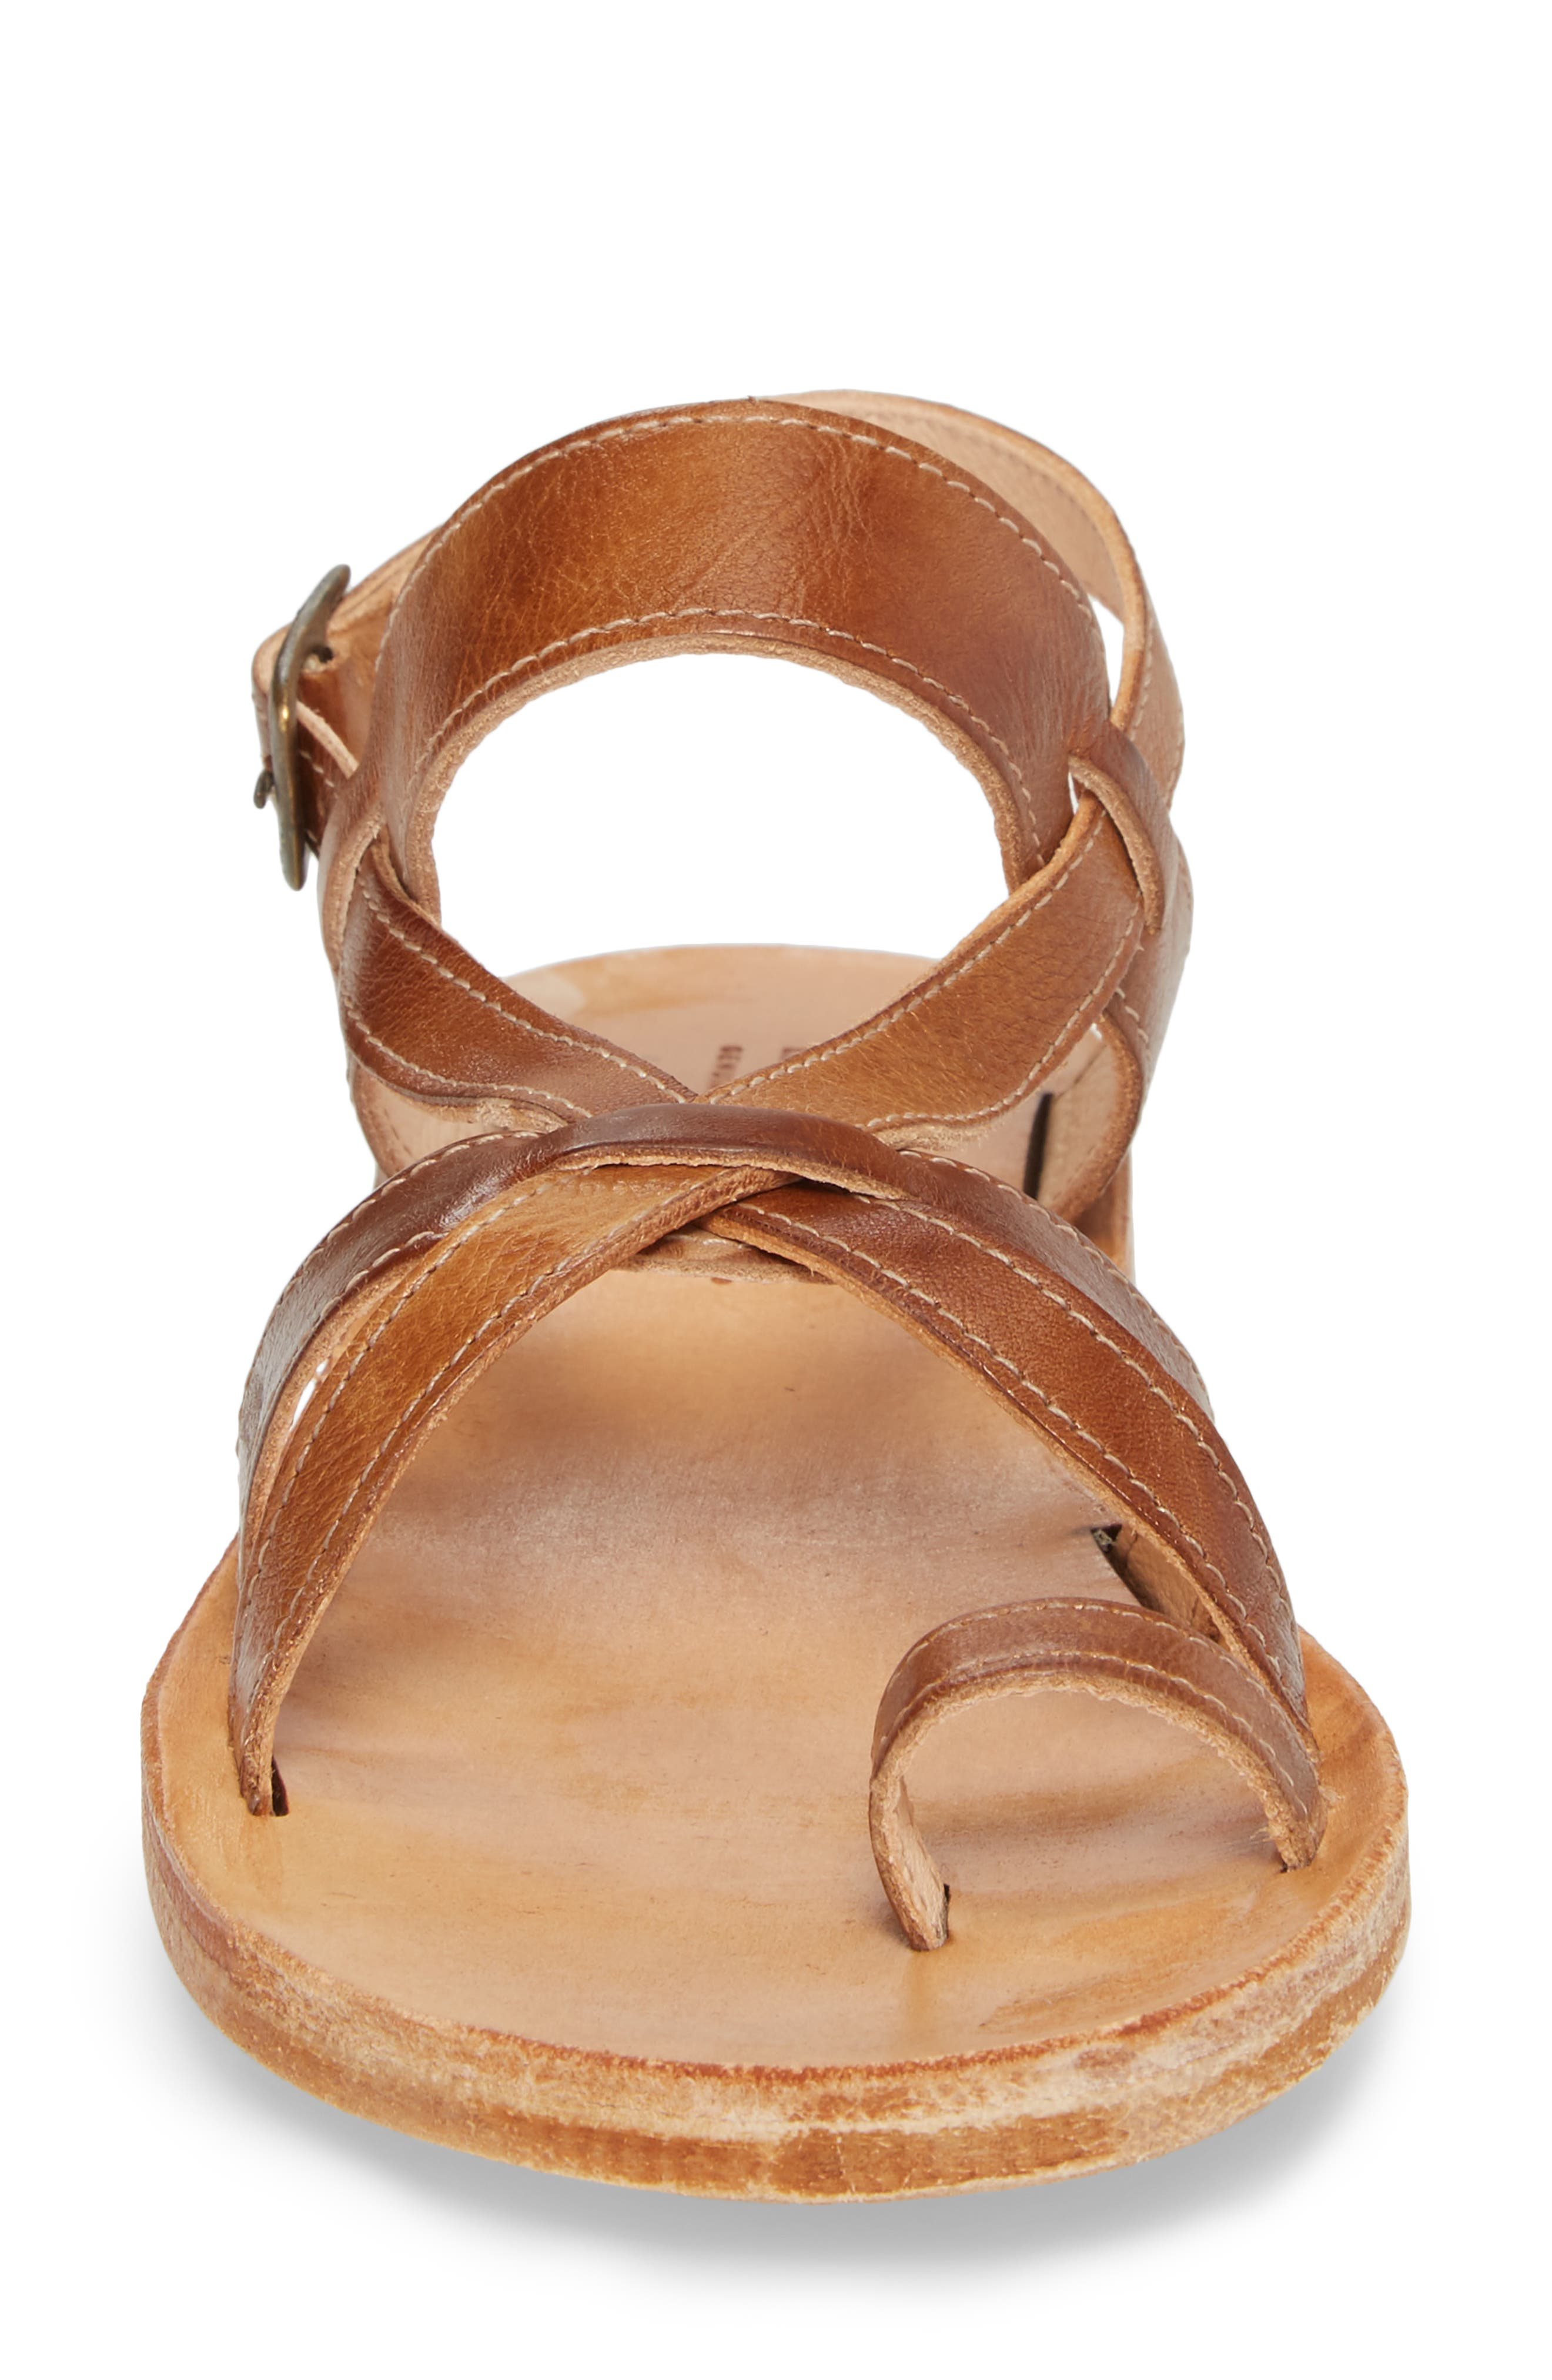 Manati Sandal,                             Alternate thumbnail 4, color,                             230